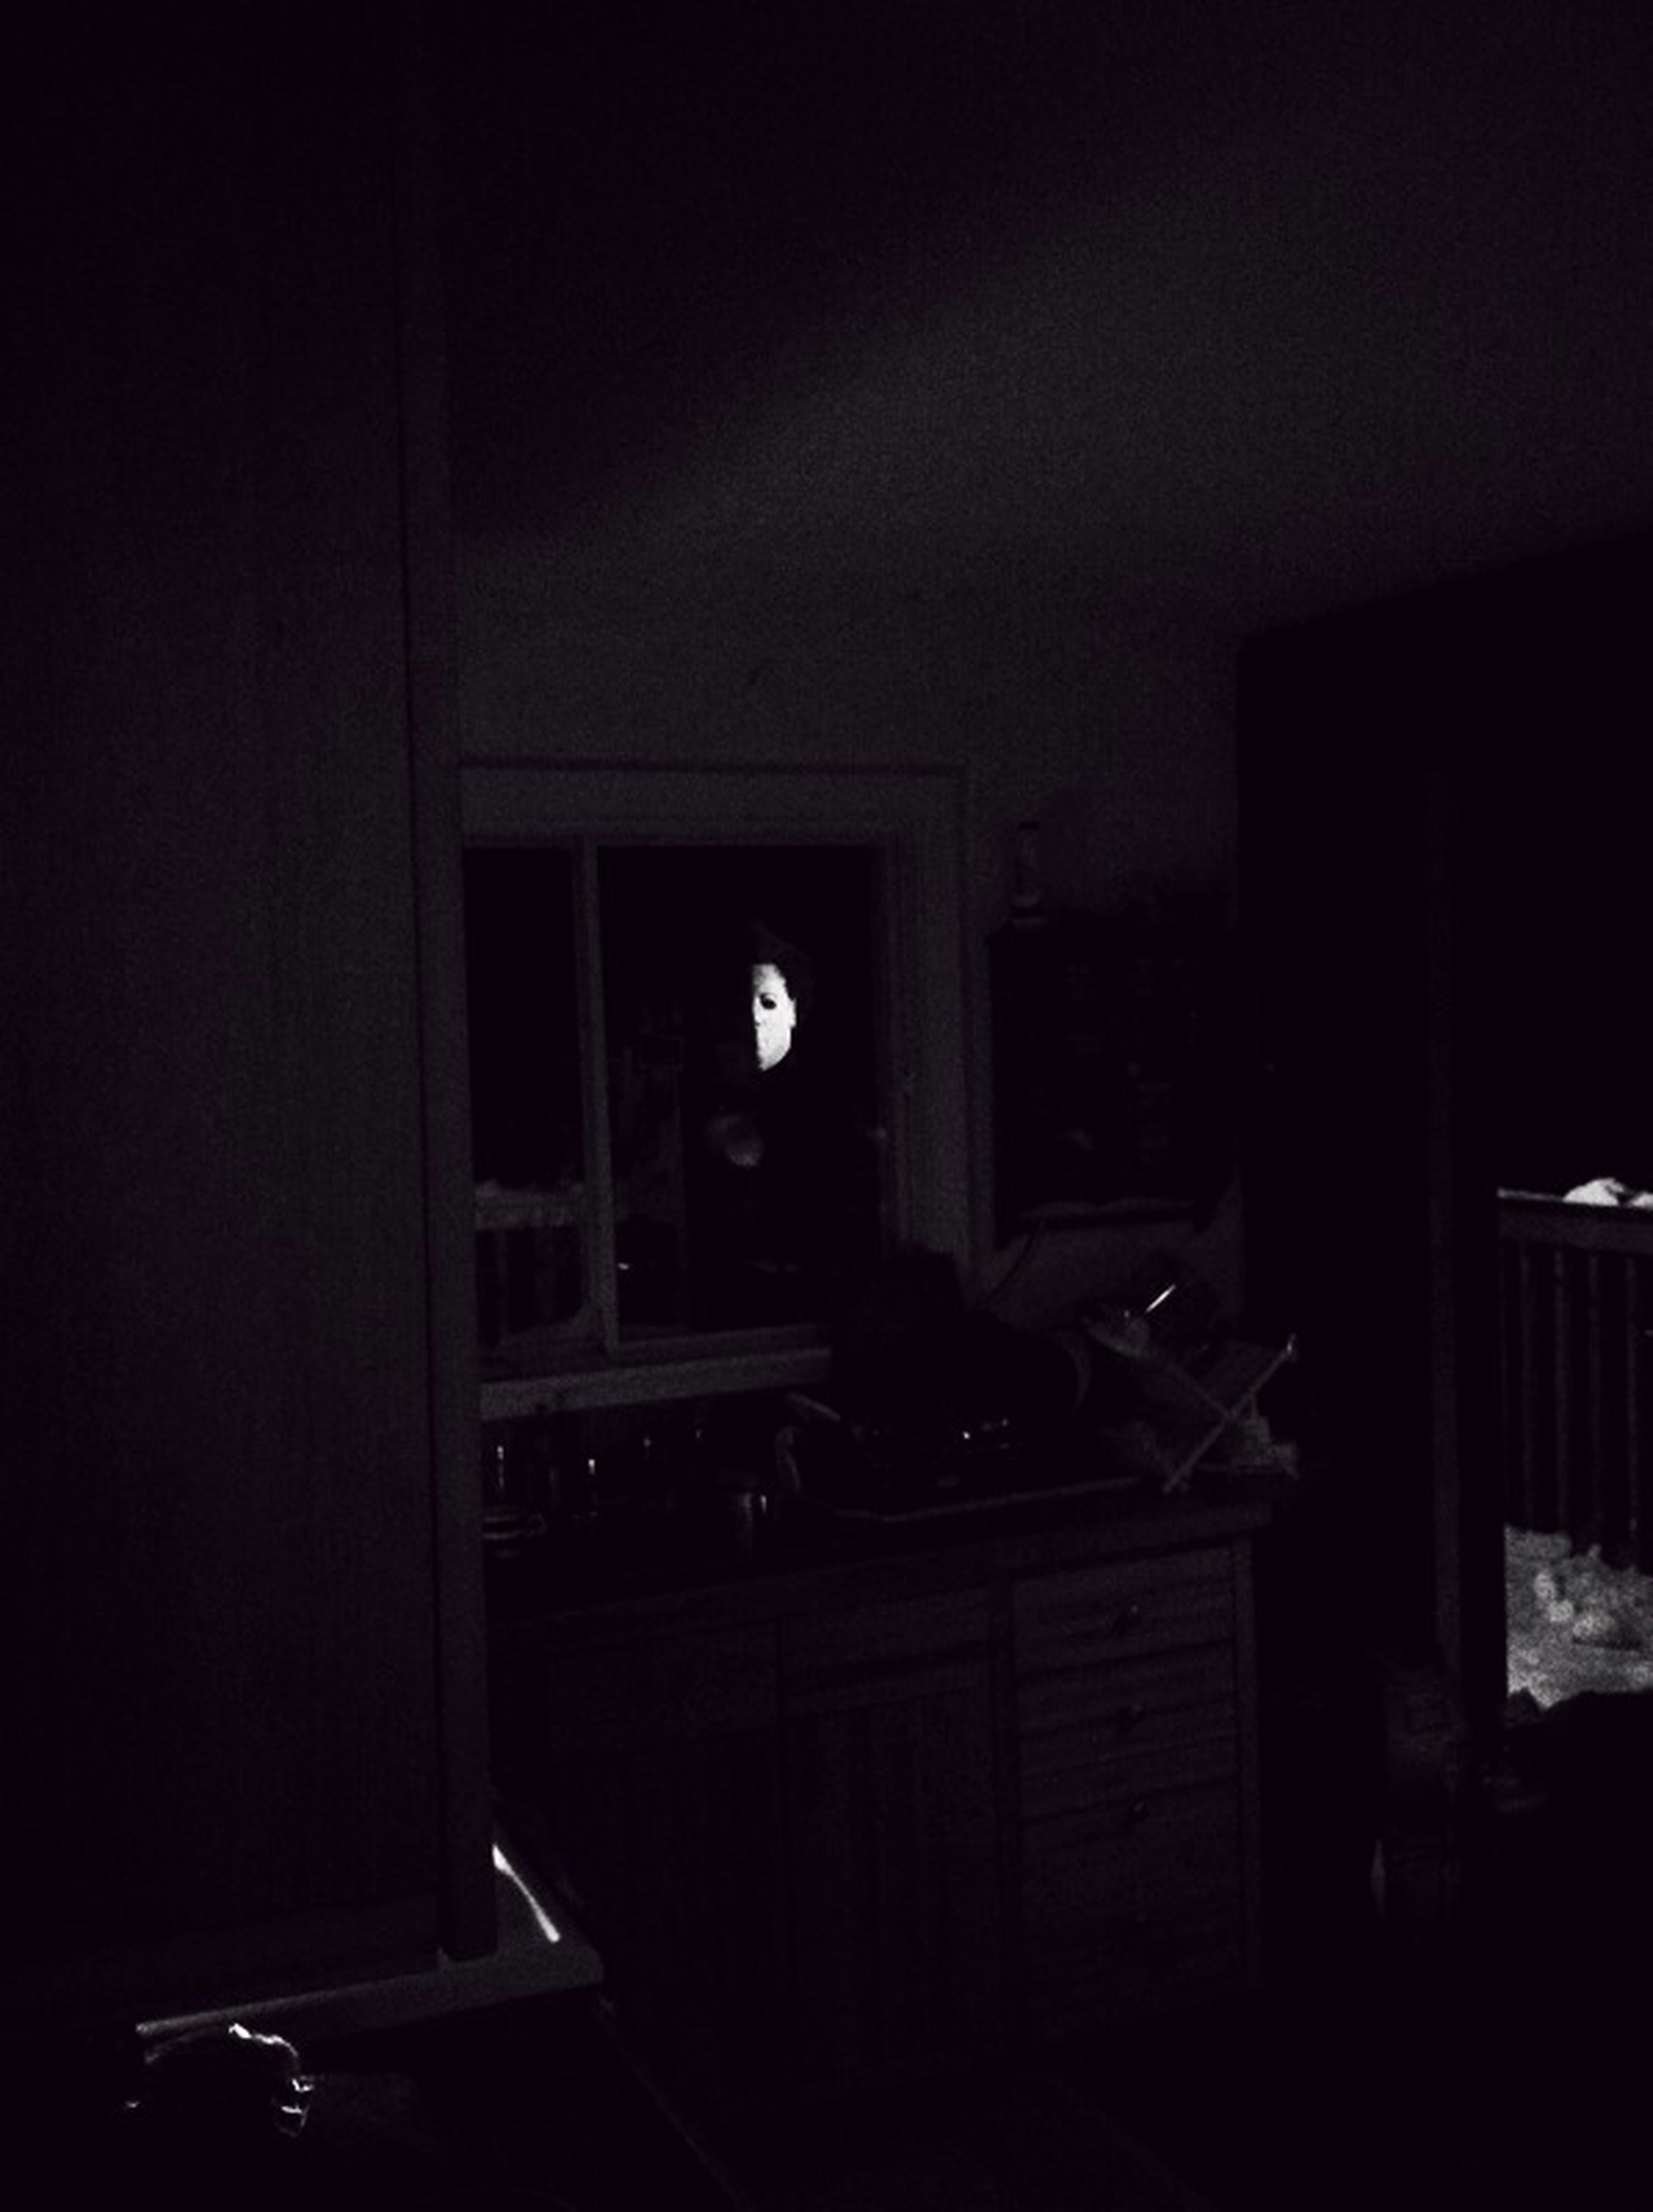 indoors, illuminated, night, dark, lighting equipment, home interior, house, built structure, architecture, table, window, electric lamp, room, chair, light - natural phenomenon, darkroom, absence, no people, door, domestic room